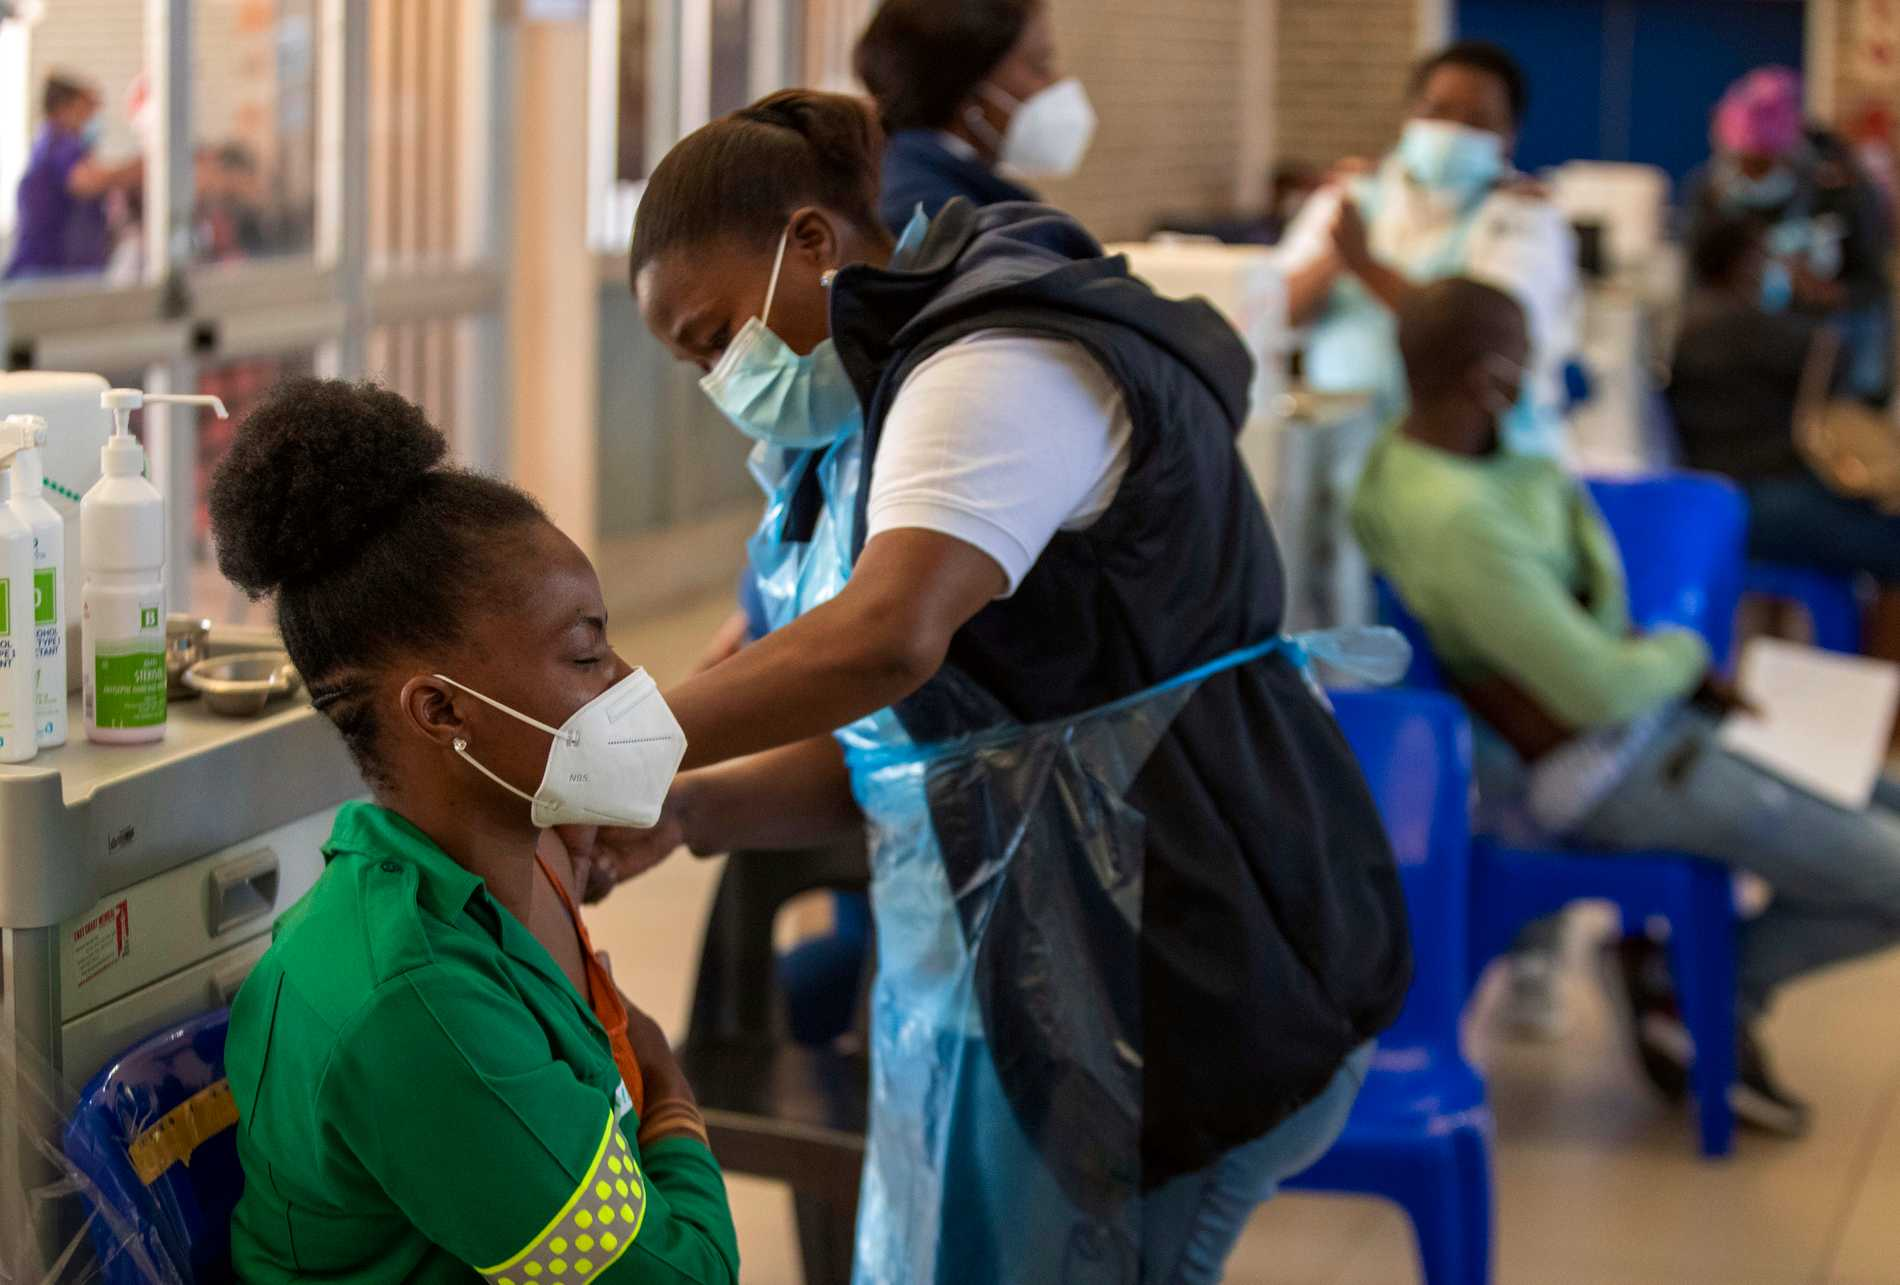 Ambulance nurse Khansani Chauk receives a dose of the COVID-19 vaccine from Johnson & Johnson in Johannesburg, on March 26 this year.